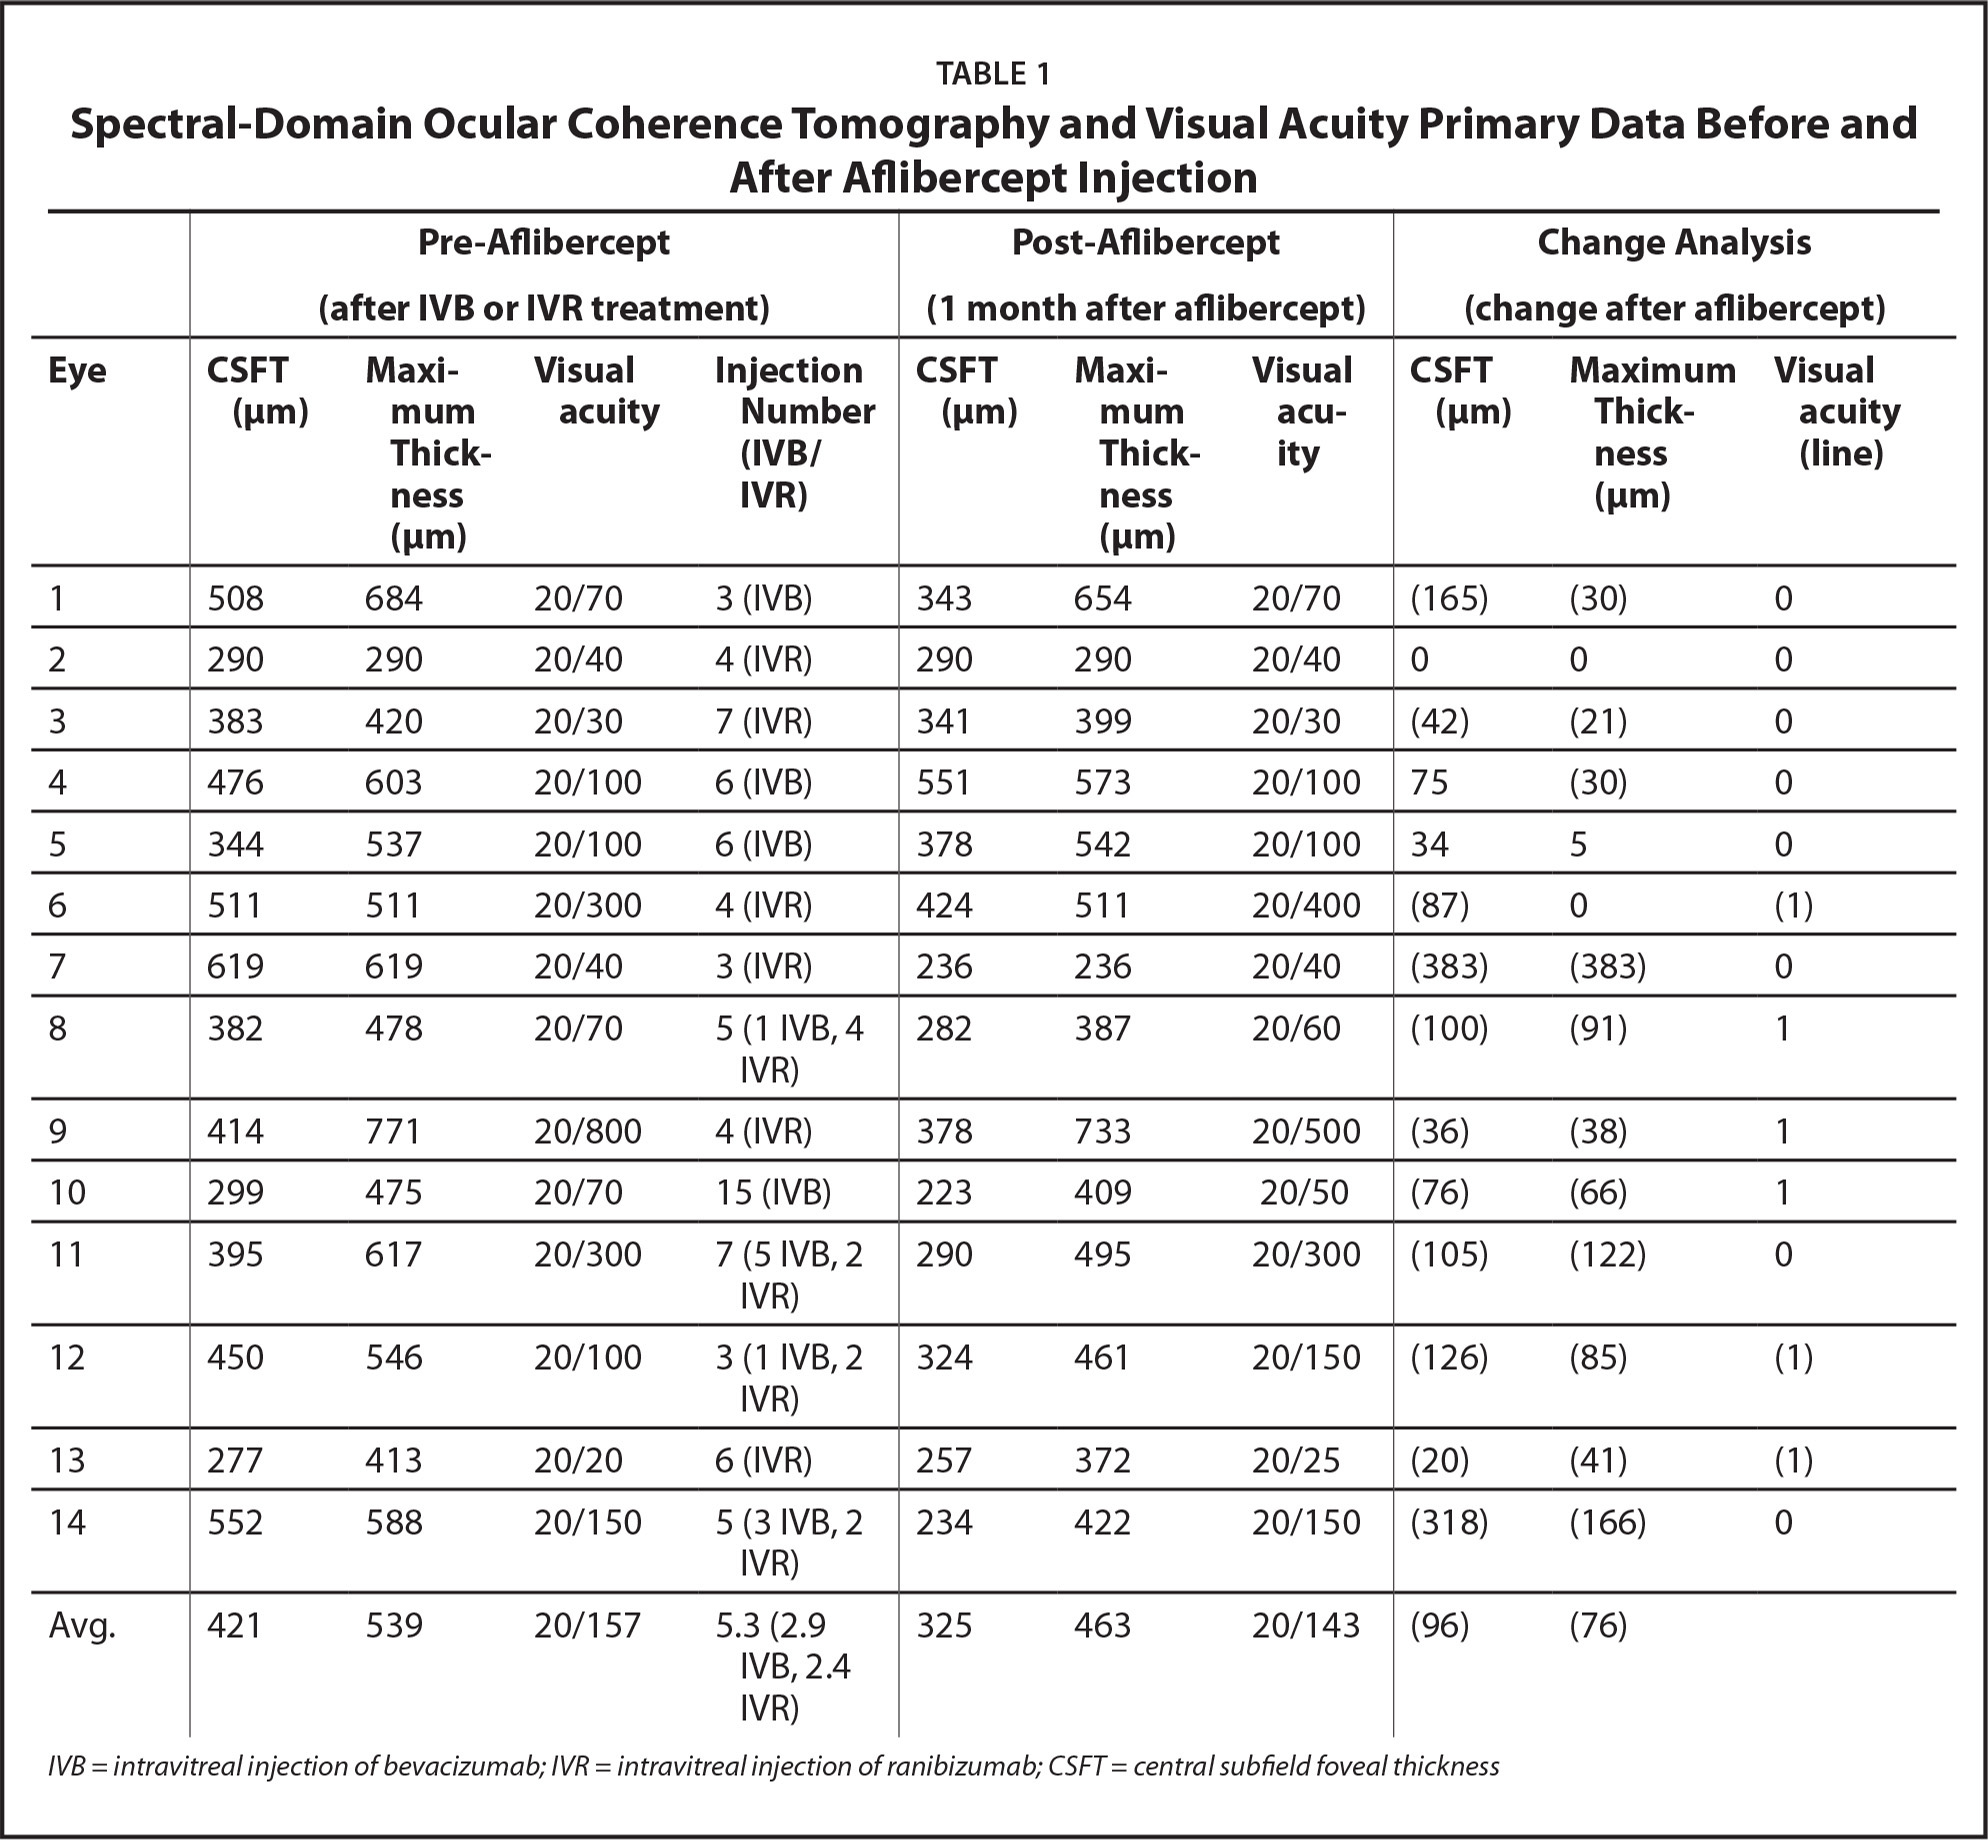 Spectral-Domain Ocular Coherence Tomography and Visual Acuity Primary Data Before and After Aflibercept Injection